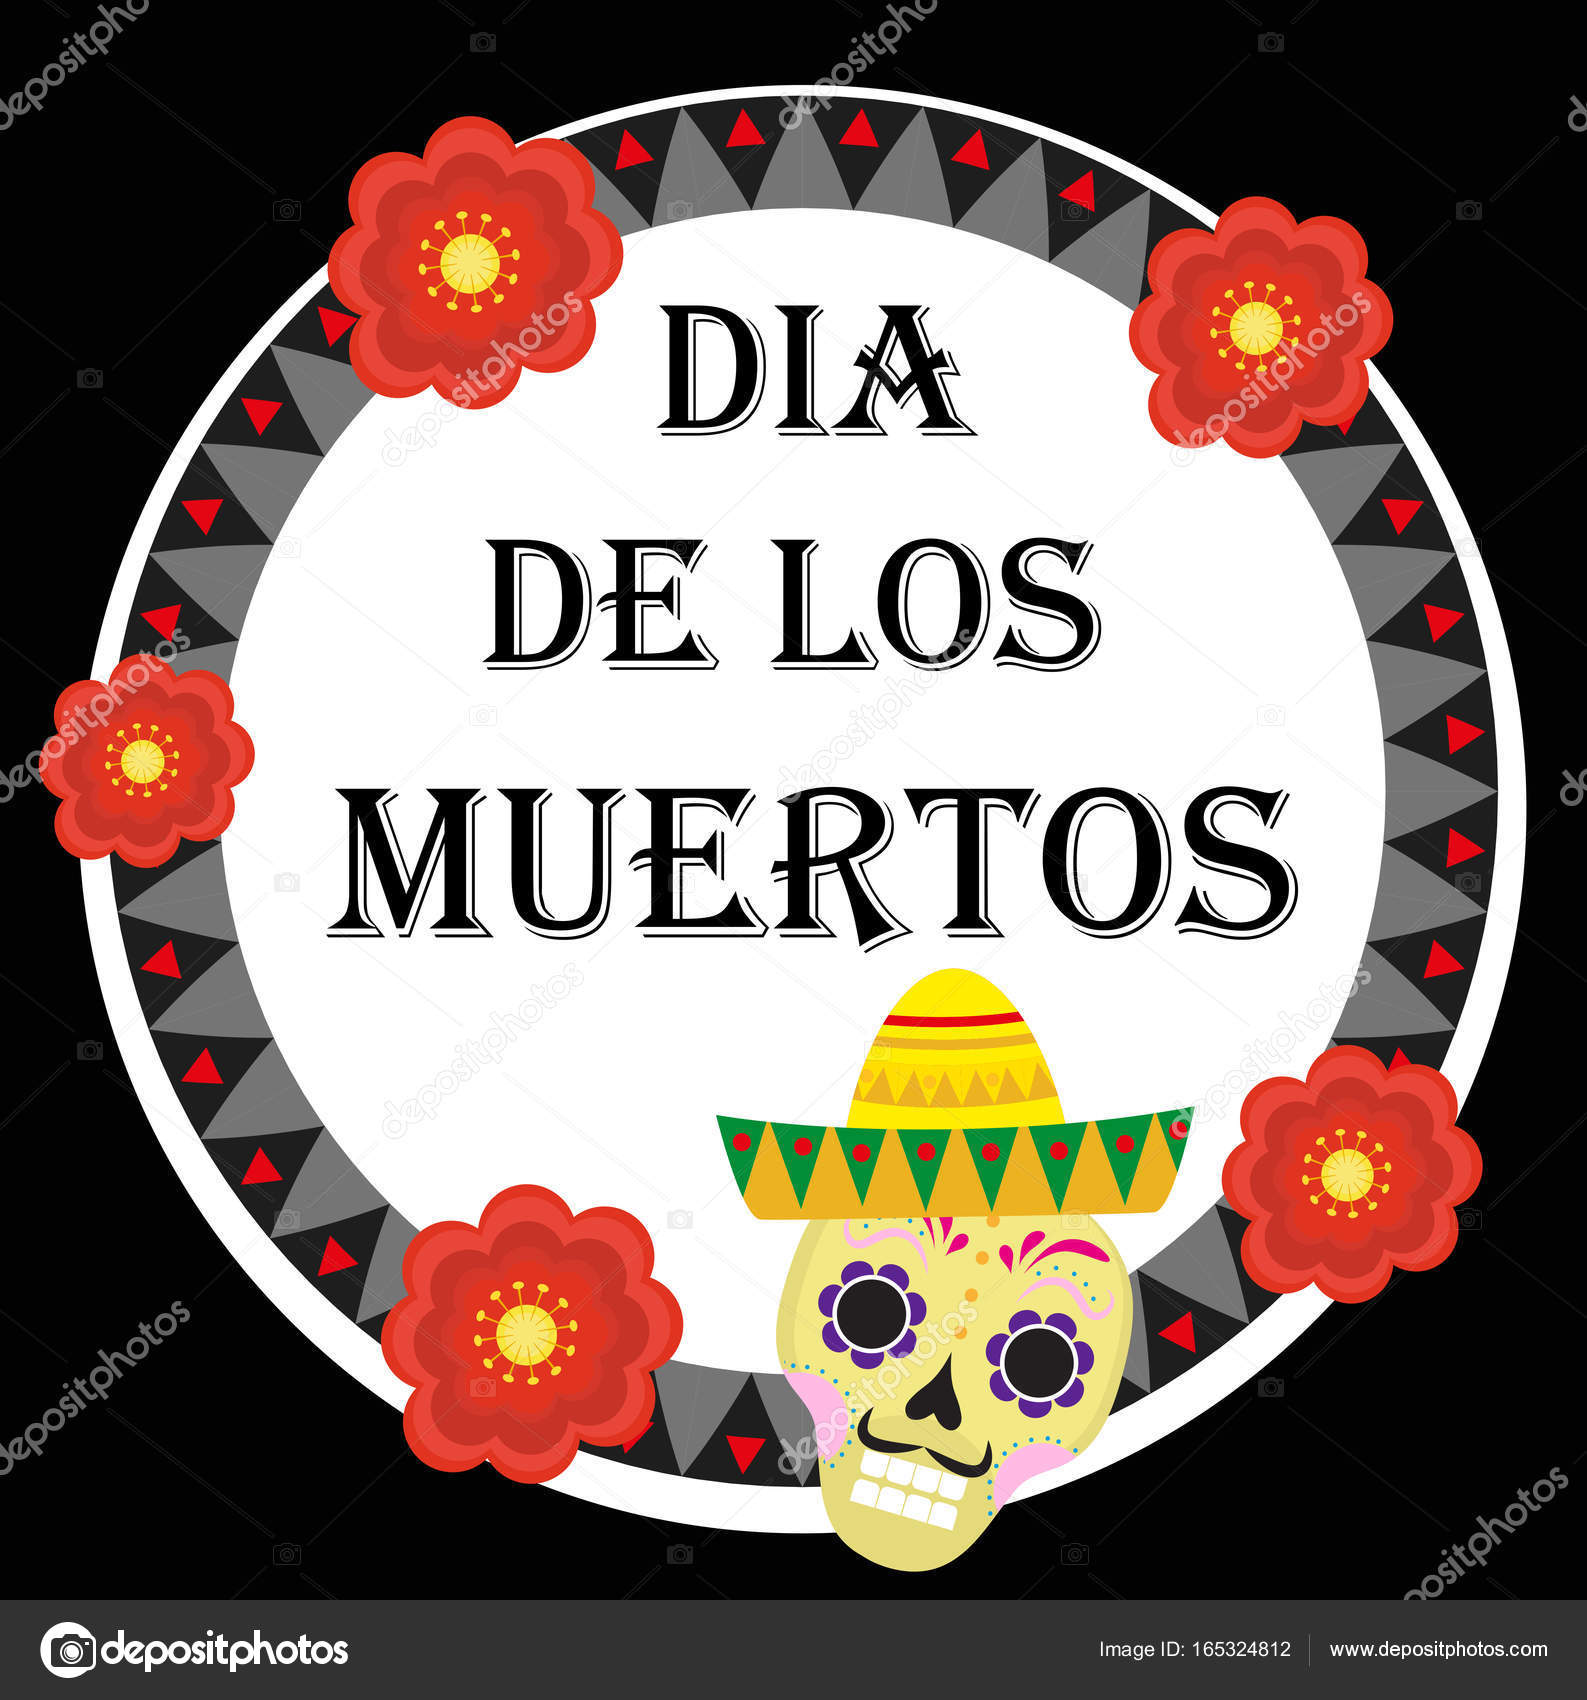 Day of the dead mexican holiday greeting card poster flyer dia de day of the dead mexican holiday greeting card poster flyer dia de los m4hsunfo